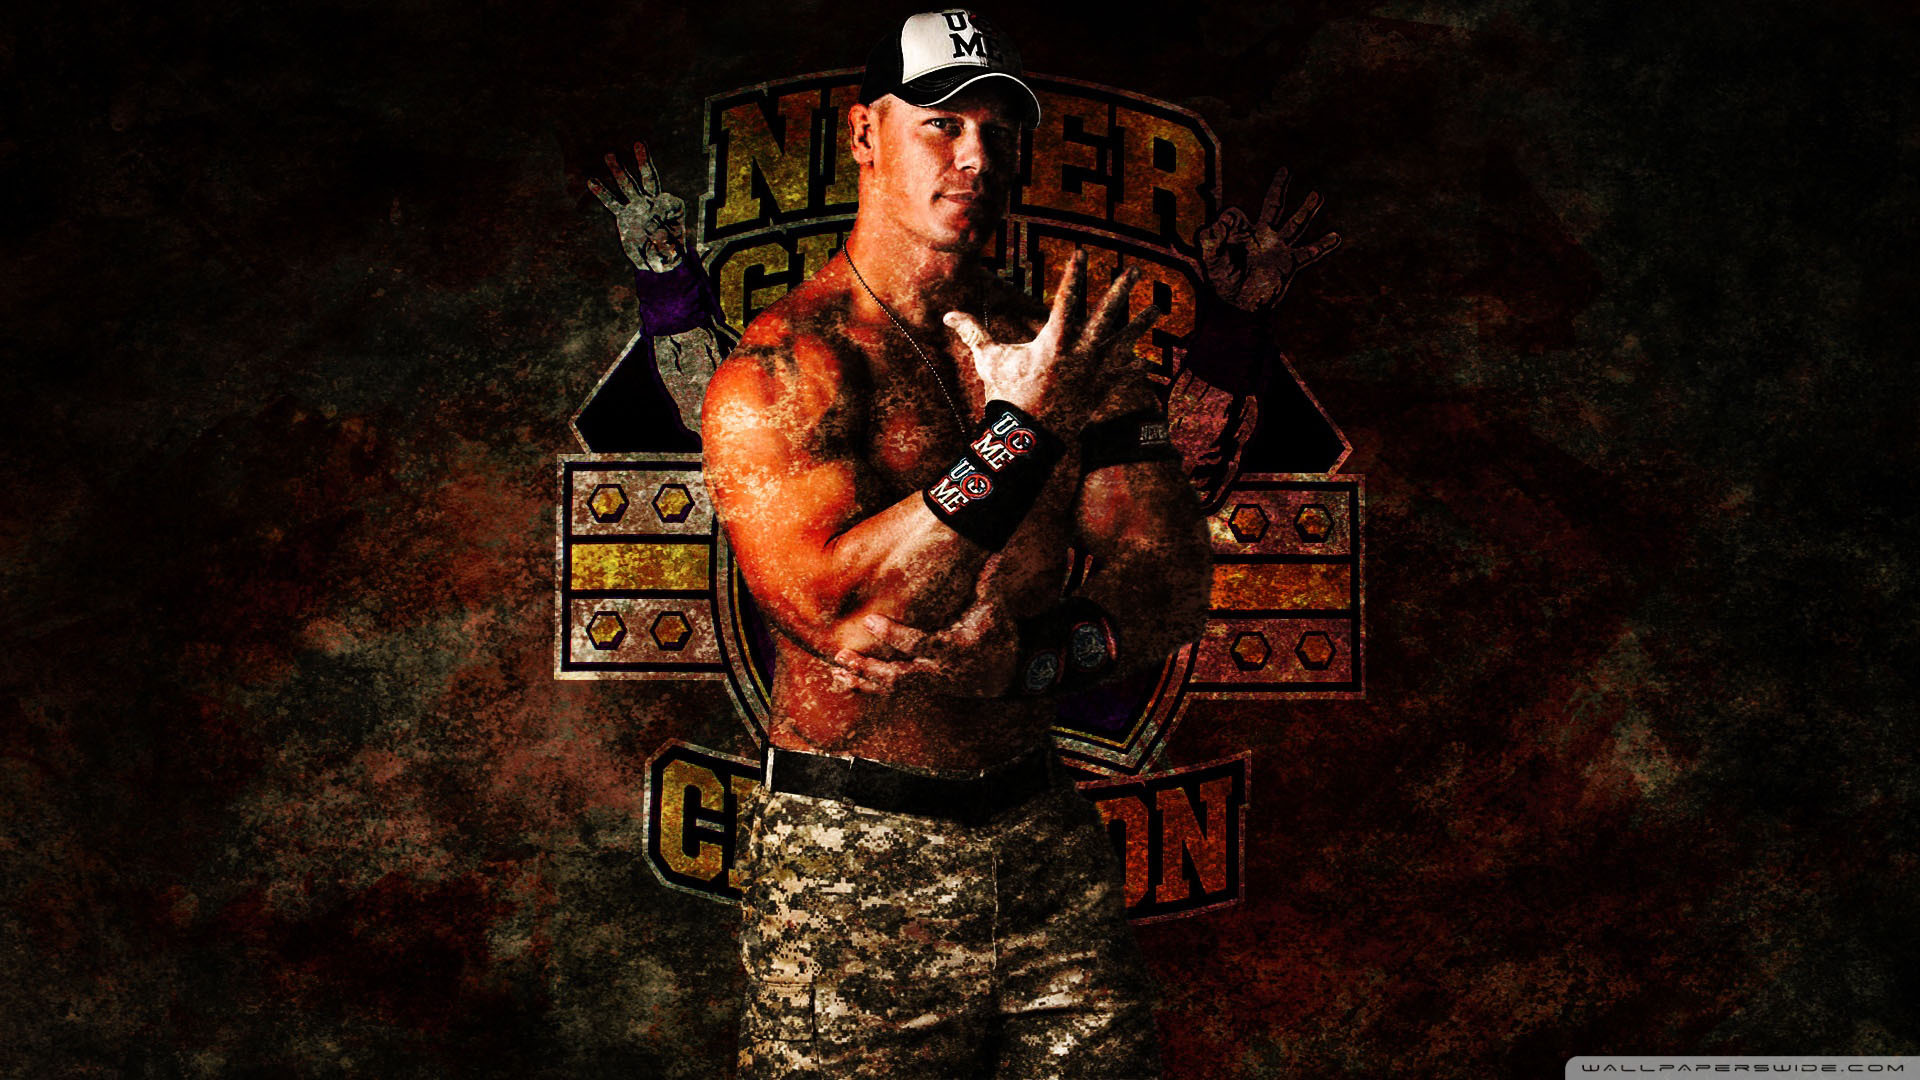 John Cena Wallpaper For Laptop